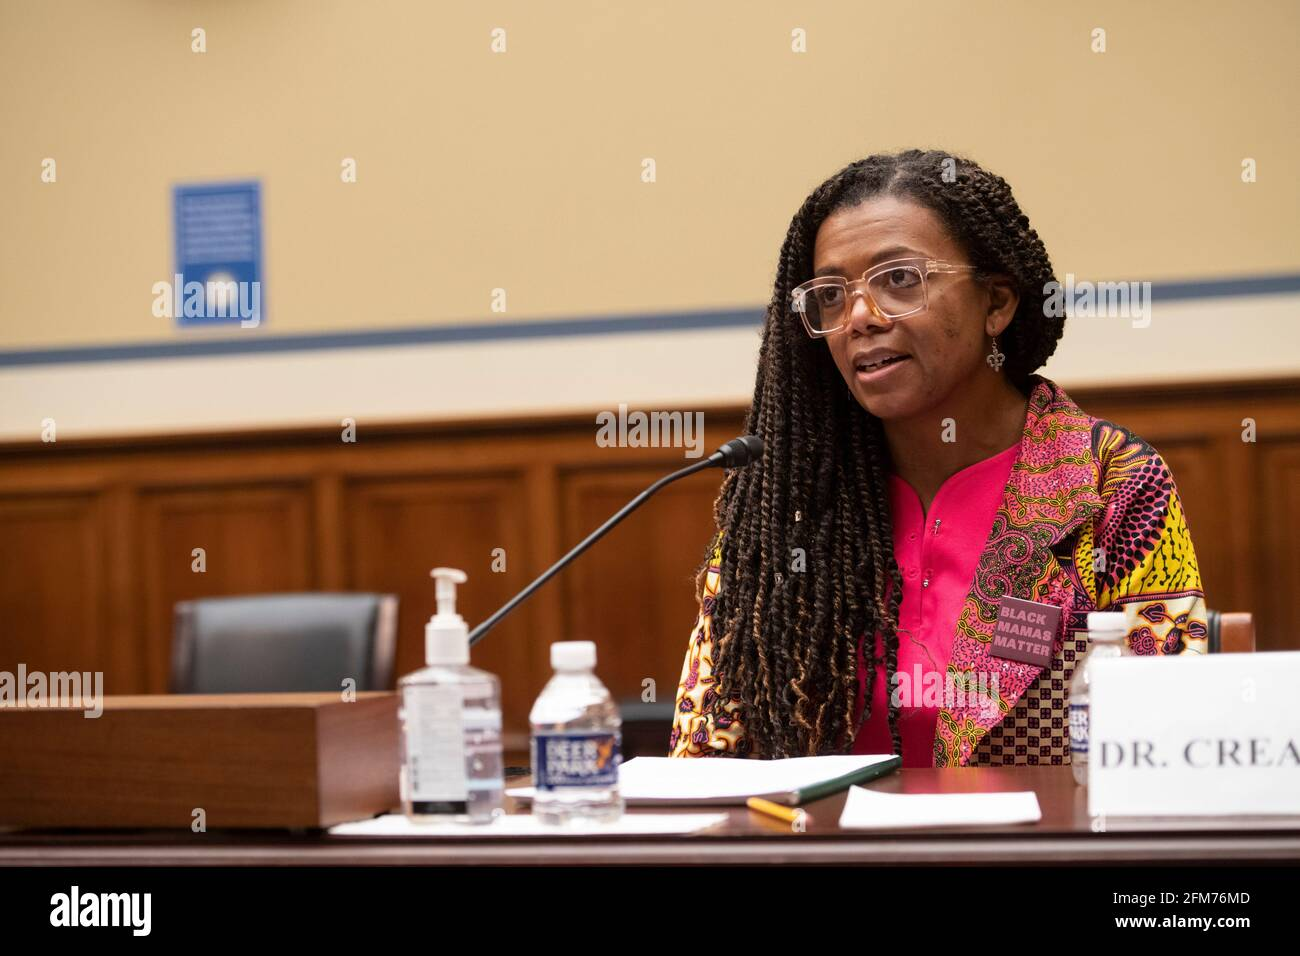 """Joia Adele Crear-Perry, M.D., FACOG, Founder and President, National Birth Equity Collaborative, appears before a House Committee on Oversight and Reform hearing """"Birthing While Black: Examining Americas Black Maternal Health Crisis"""" in the Rayburn House Office Building in Washington, DC, Thursday, May 6, 2021. Credit: Rod Lamkey/CNP /MediaPunch Stock Photo"""